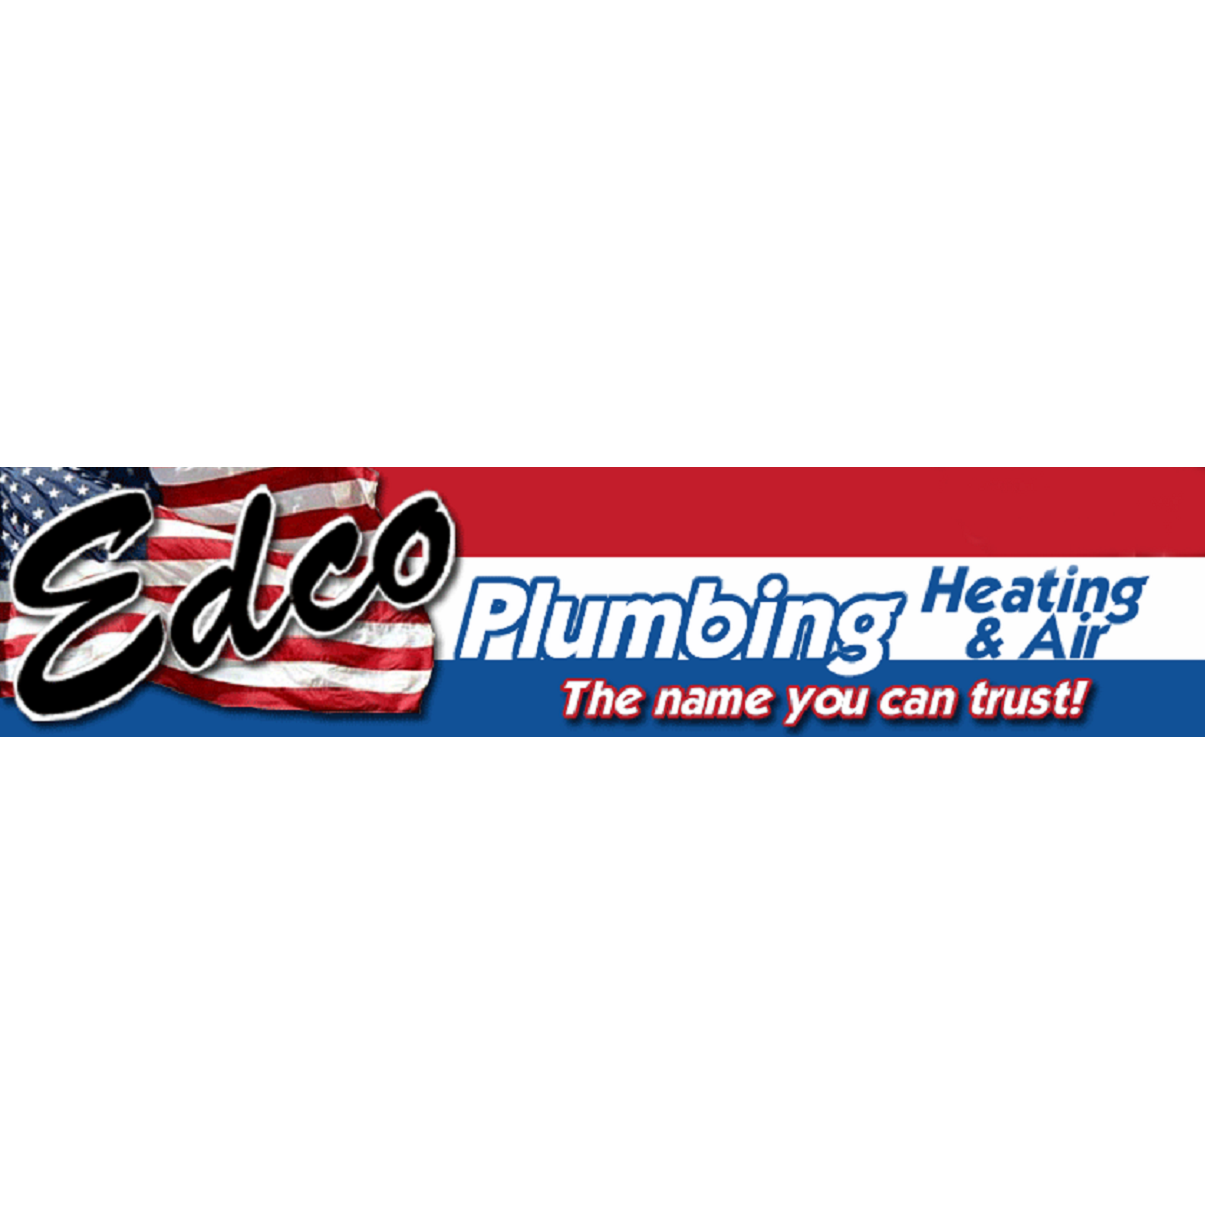 Edco Heating and Air and Plumbing